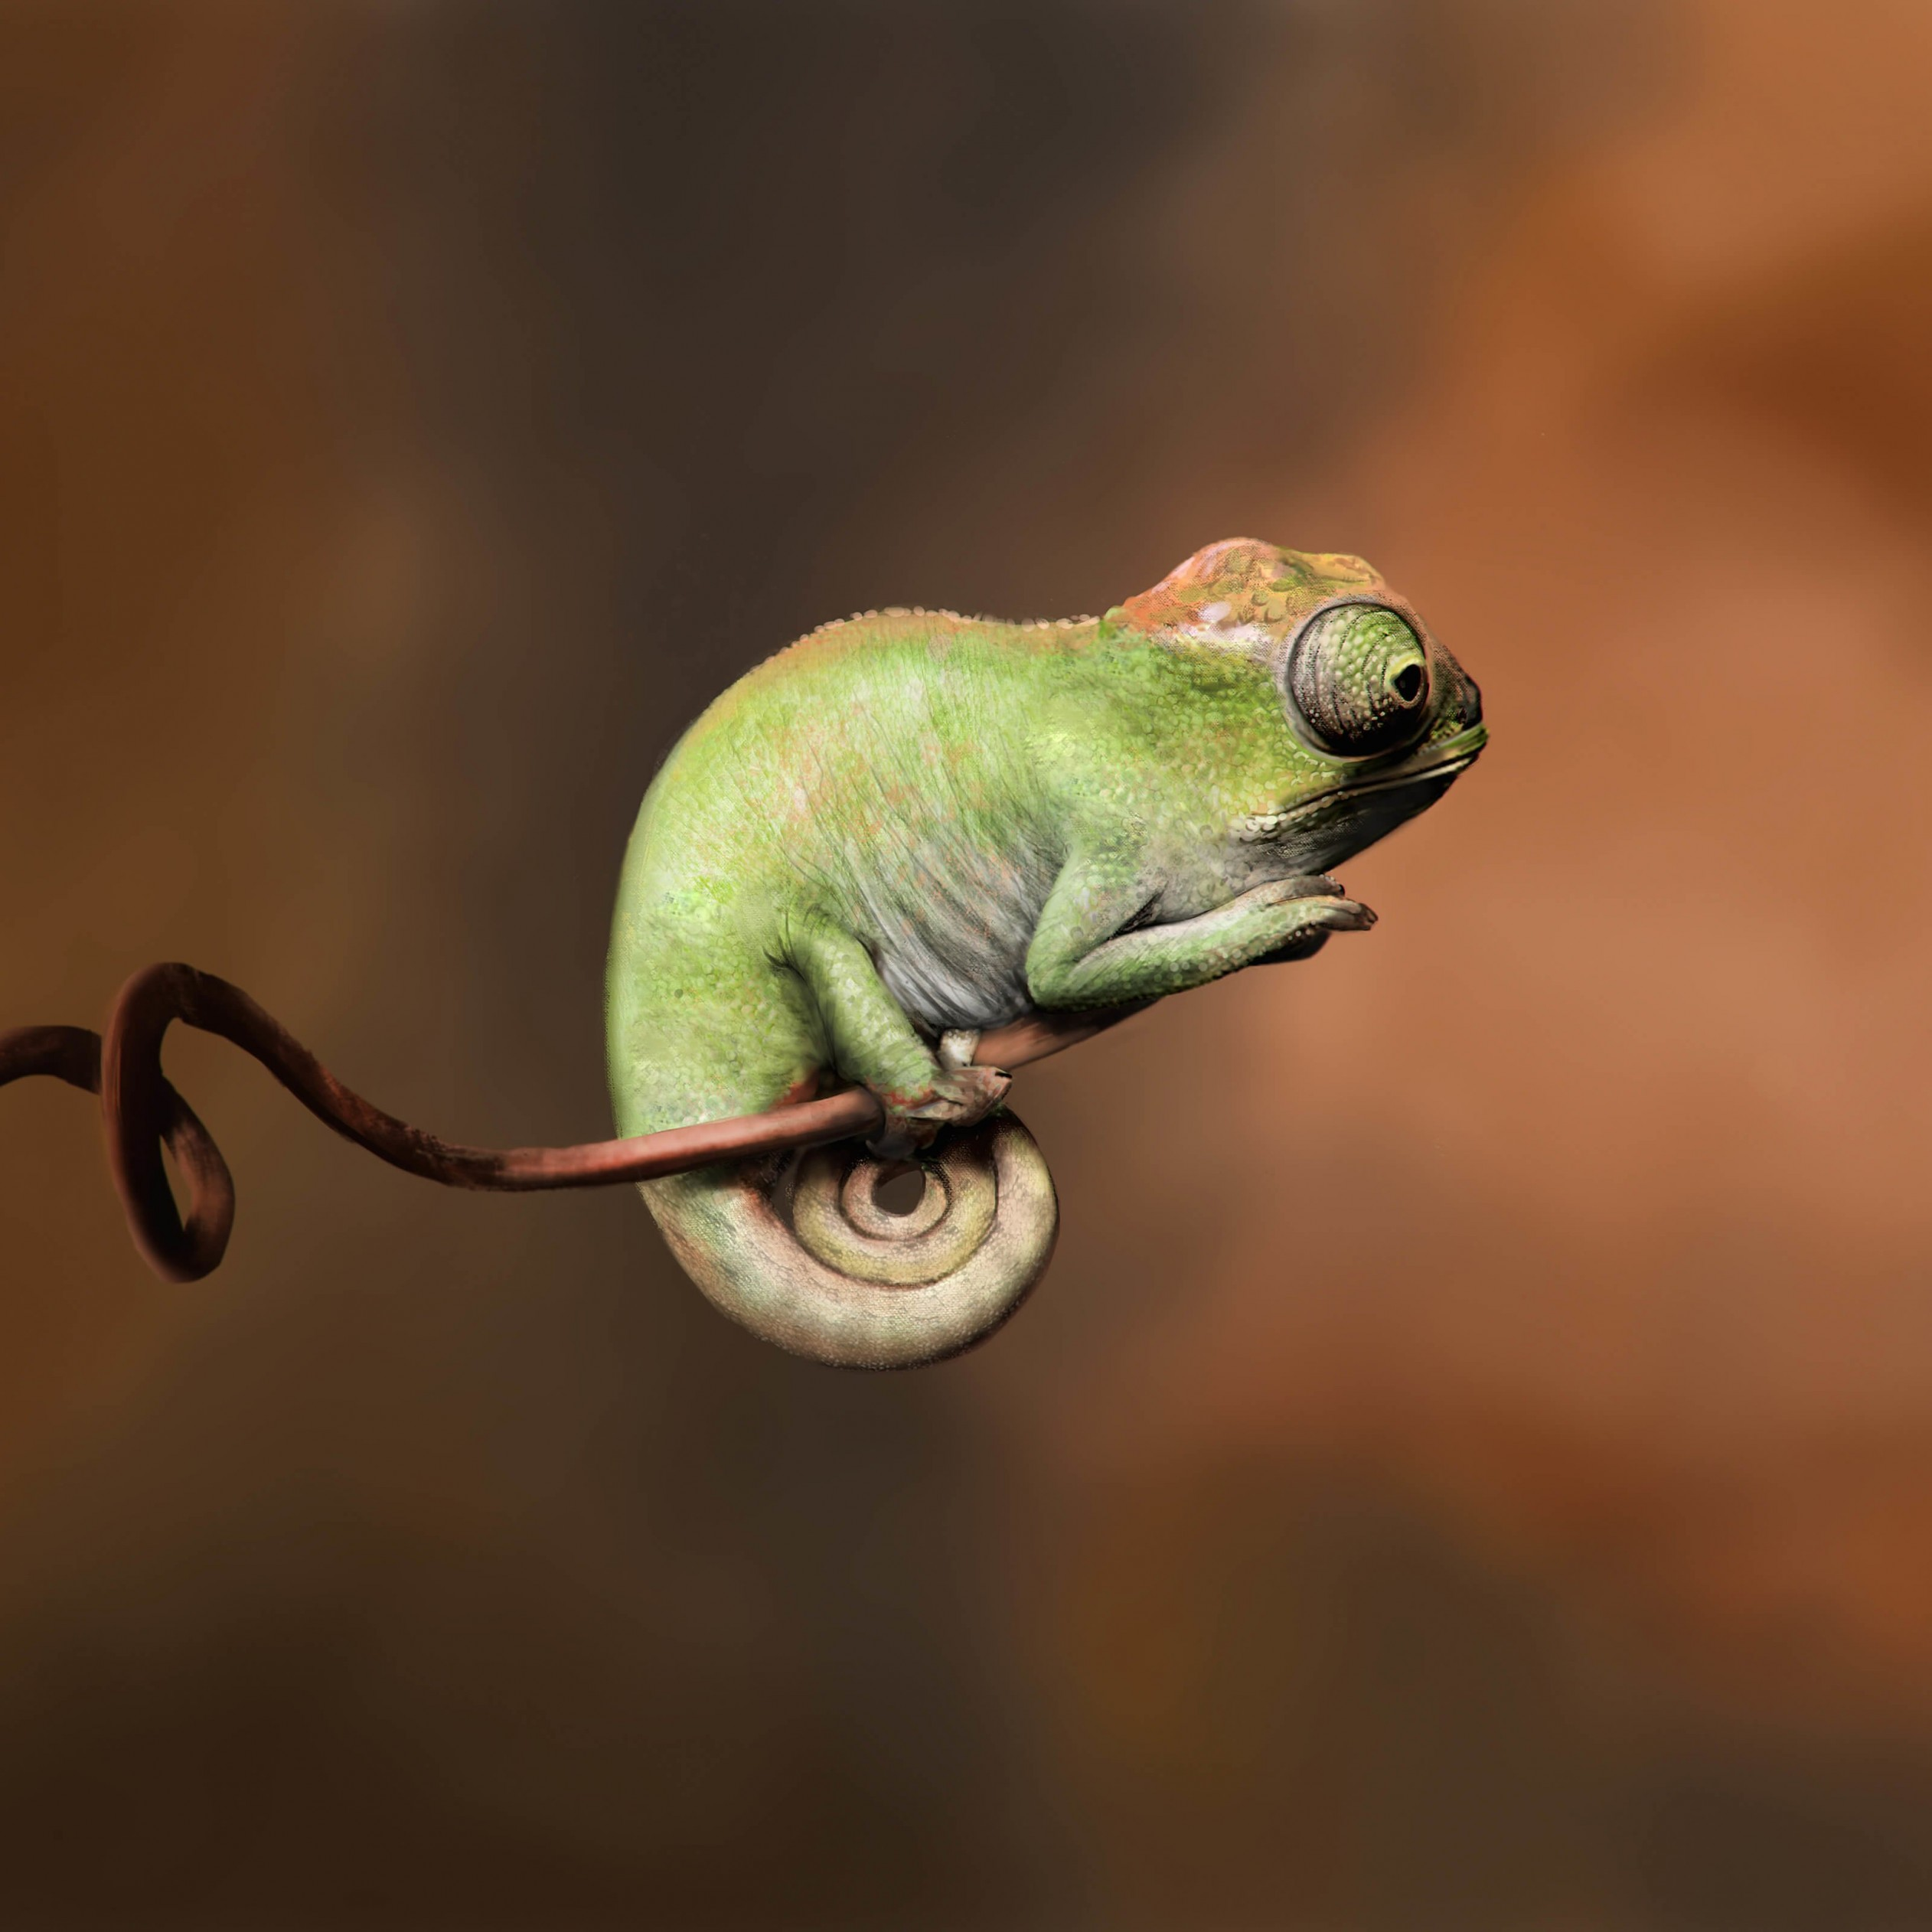 Baby Chameleon Perching On a Twisted Branch Wallpaper for Apple iPad 4